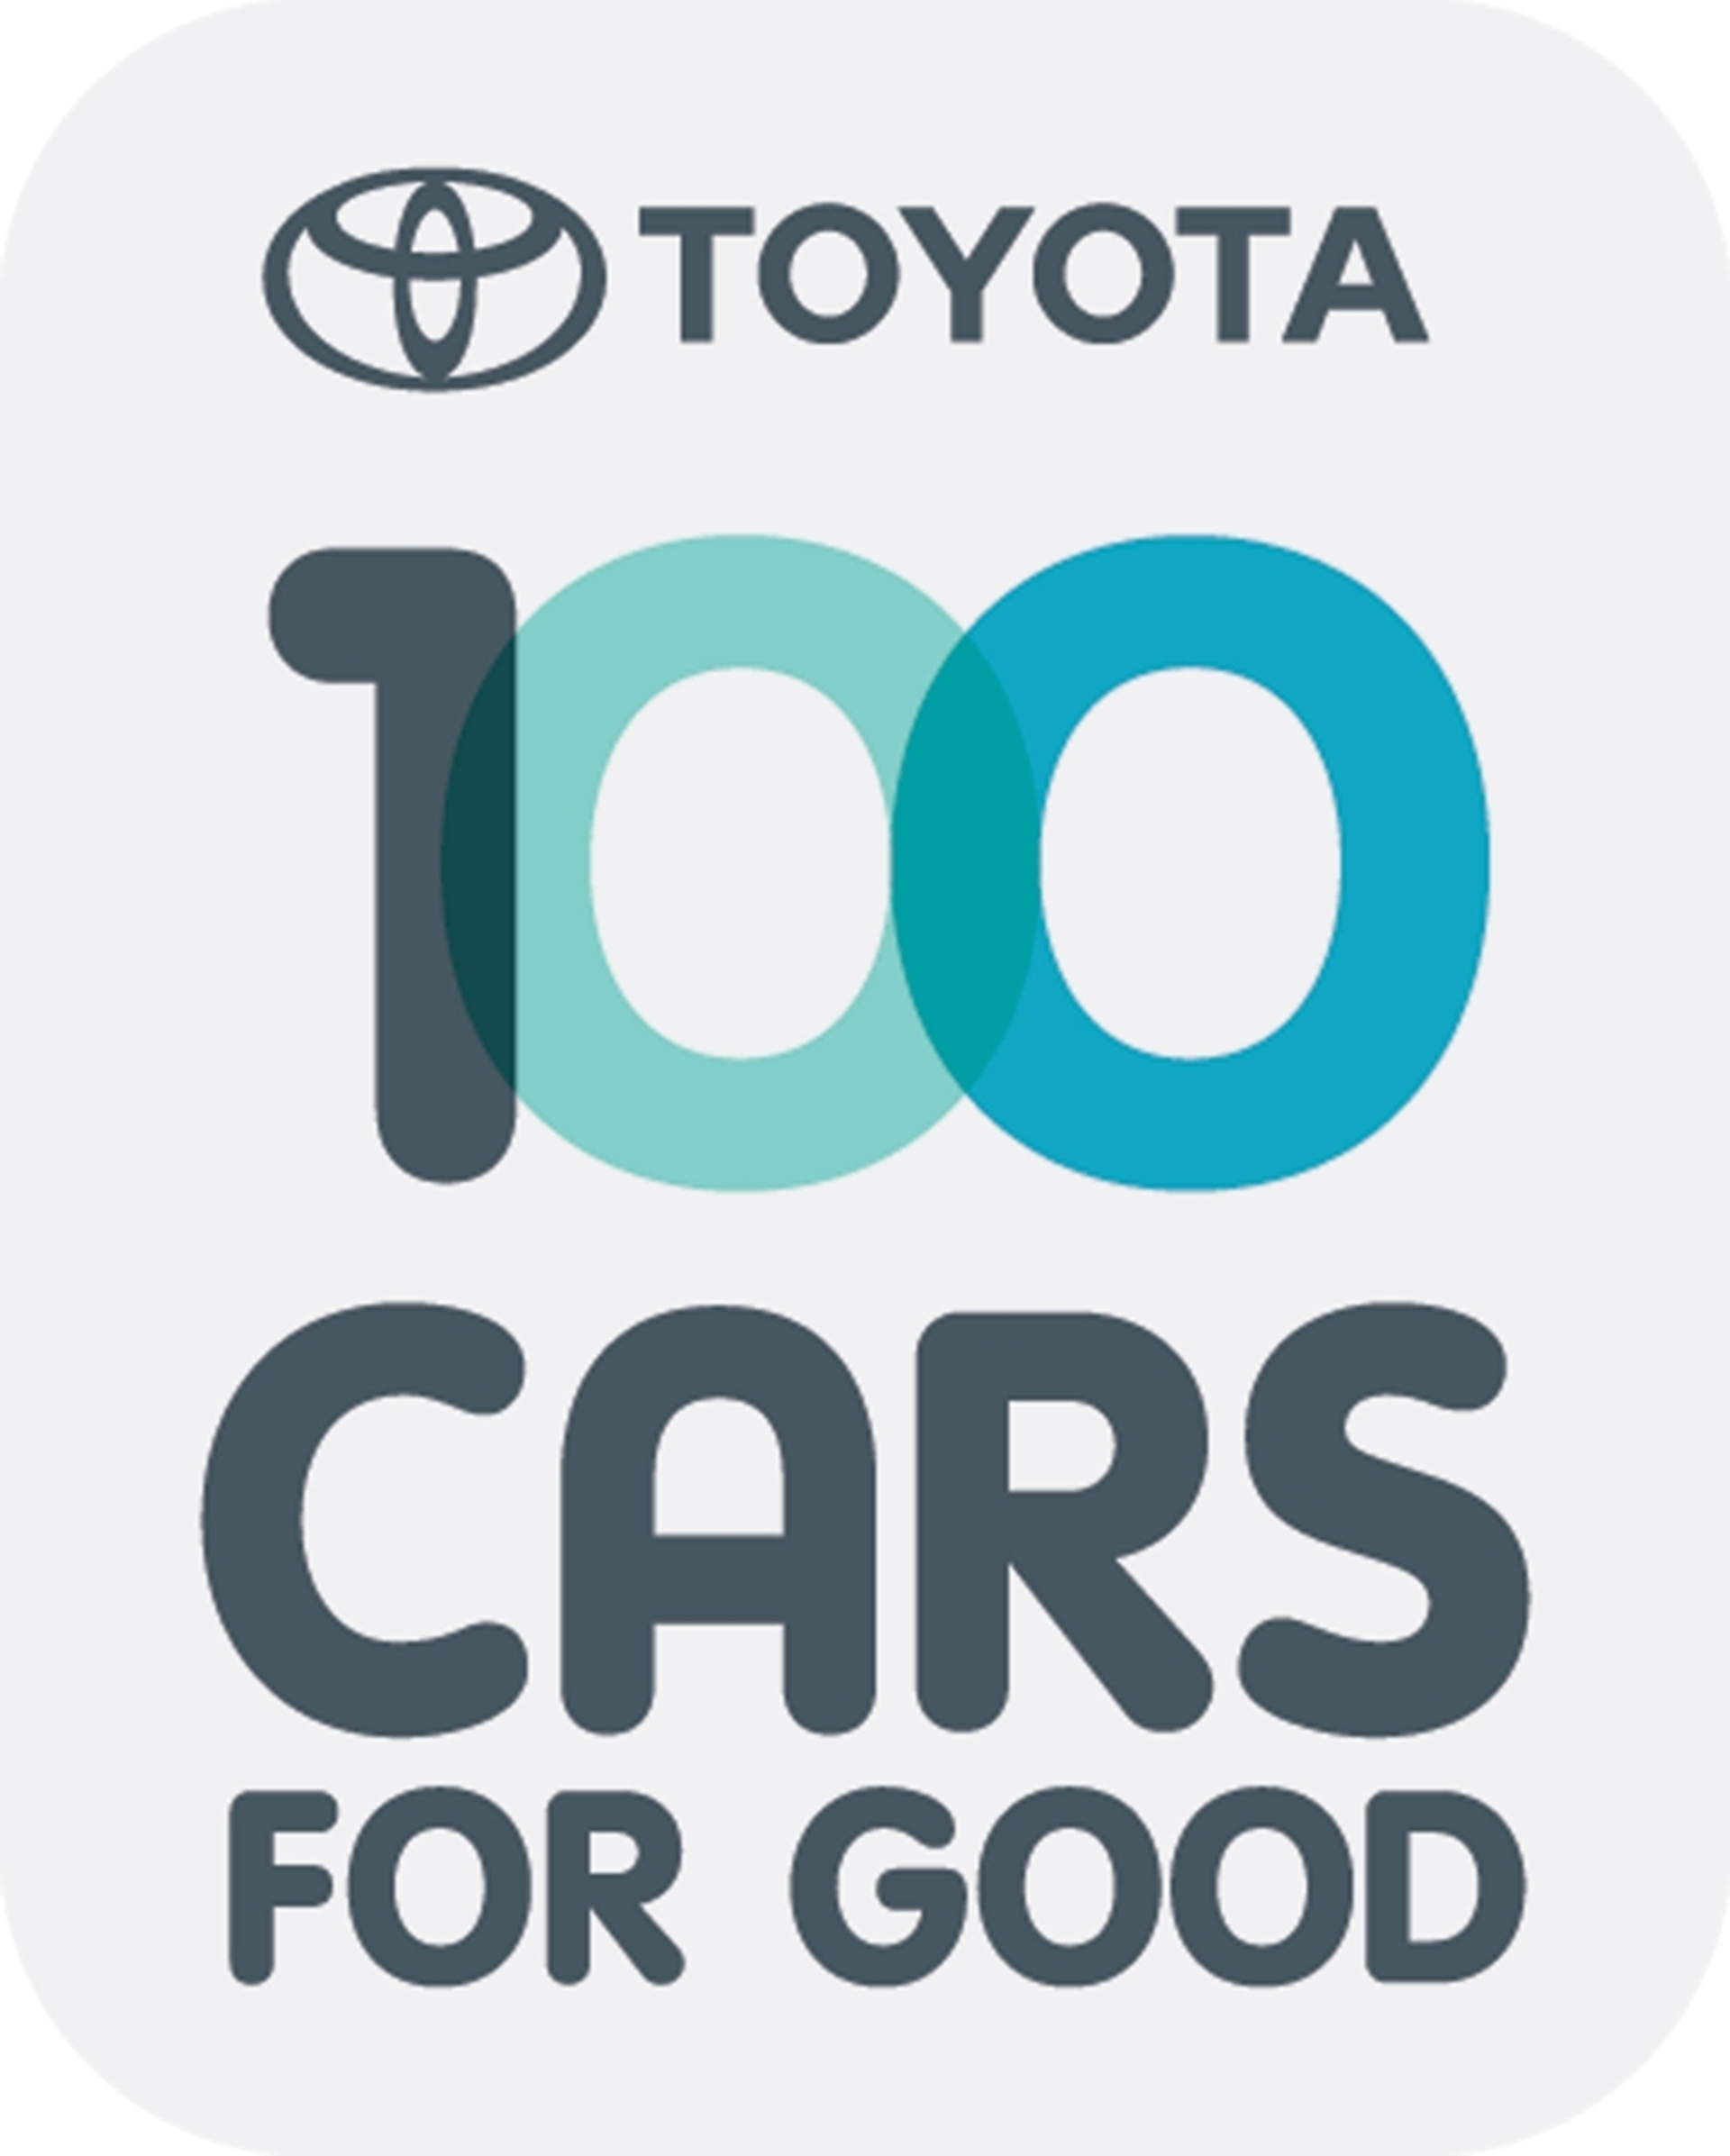 100-cars-for-good